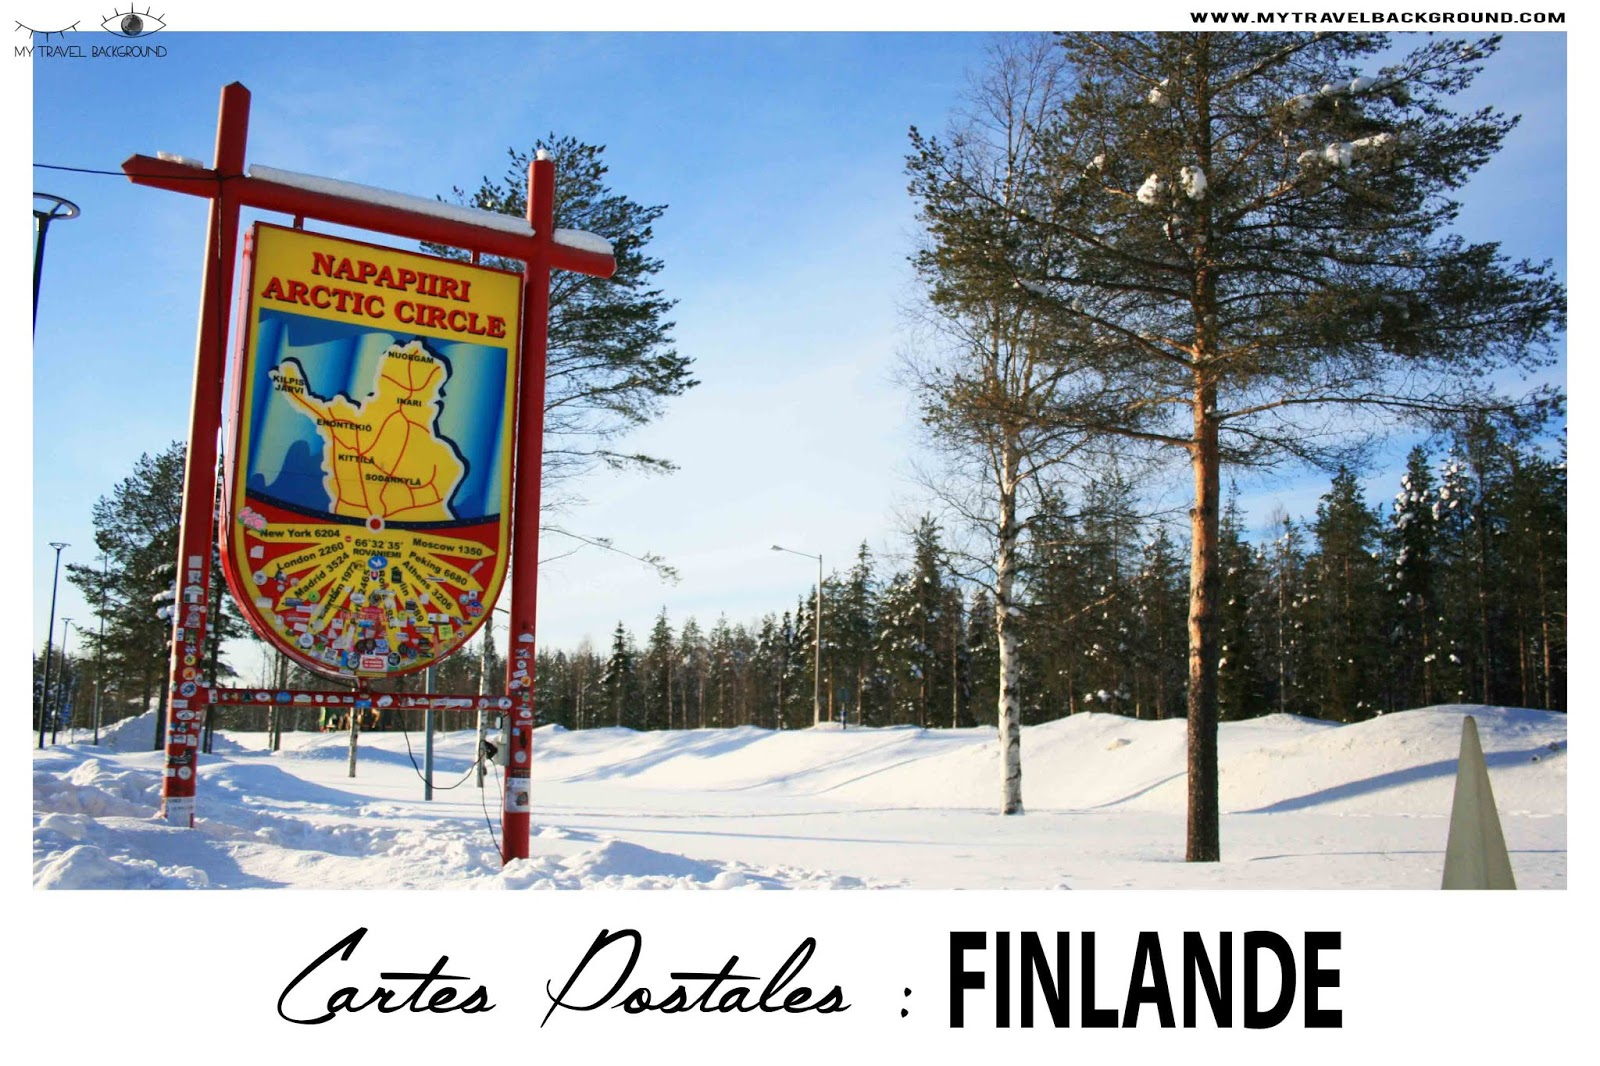 My Travel Background : carte postale de Finlande